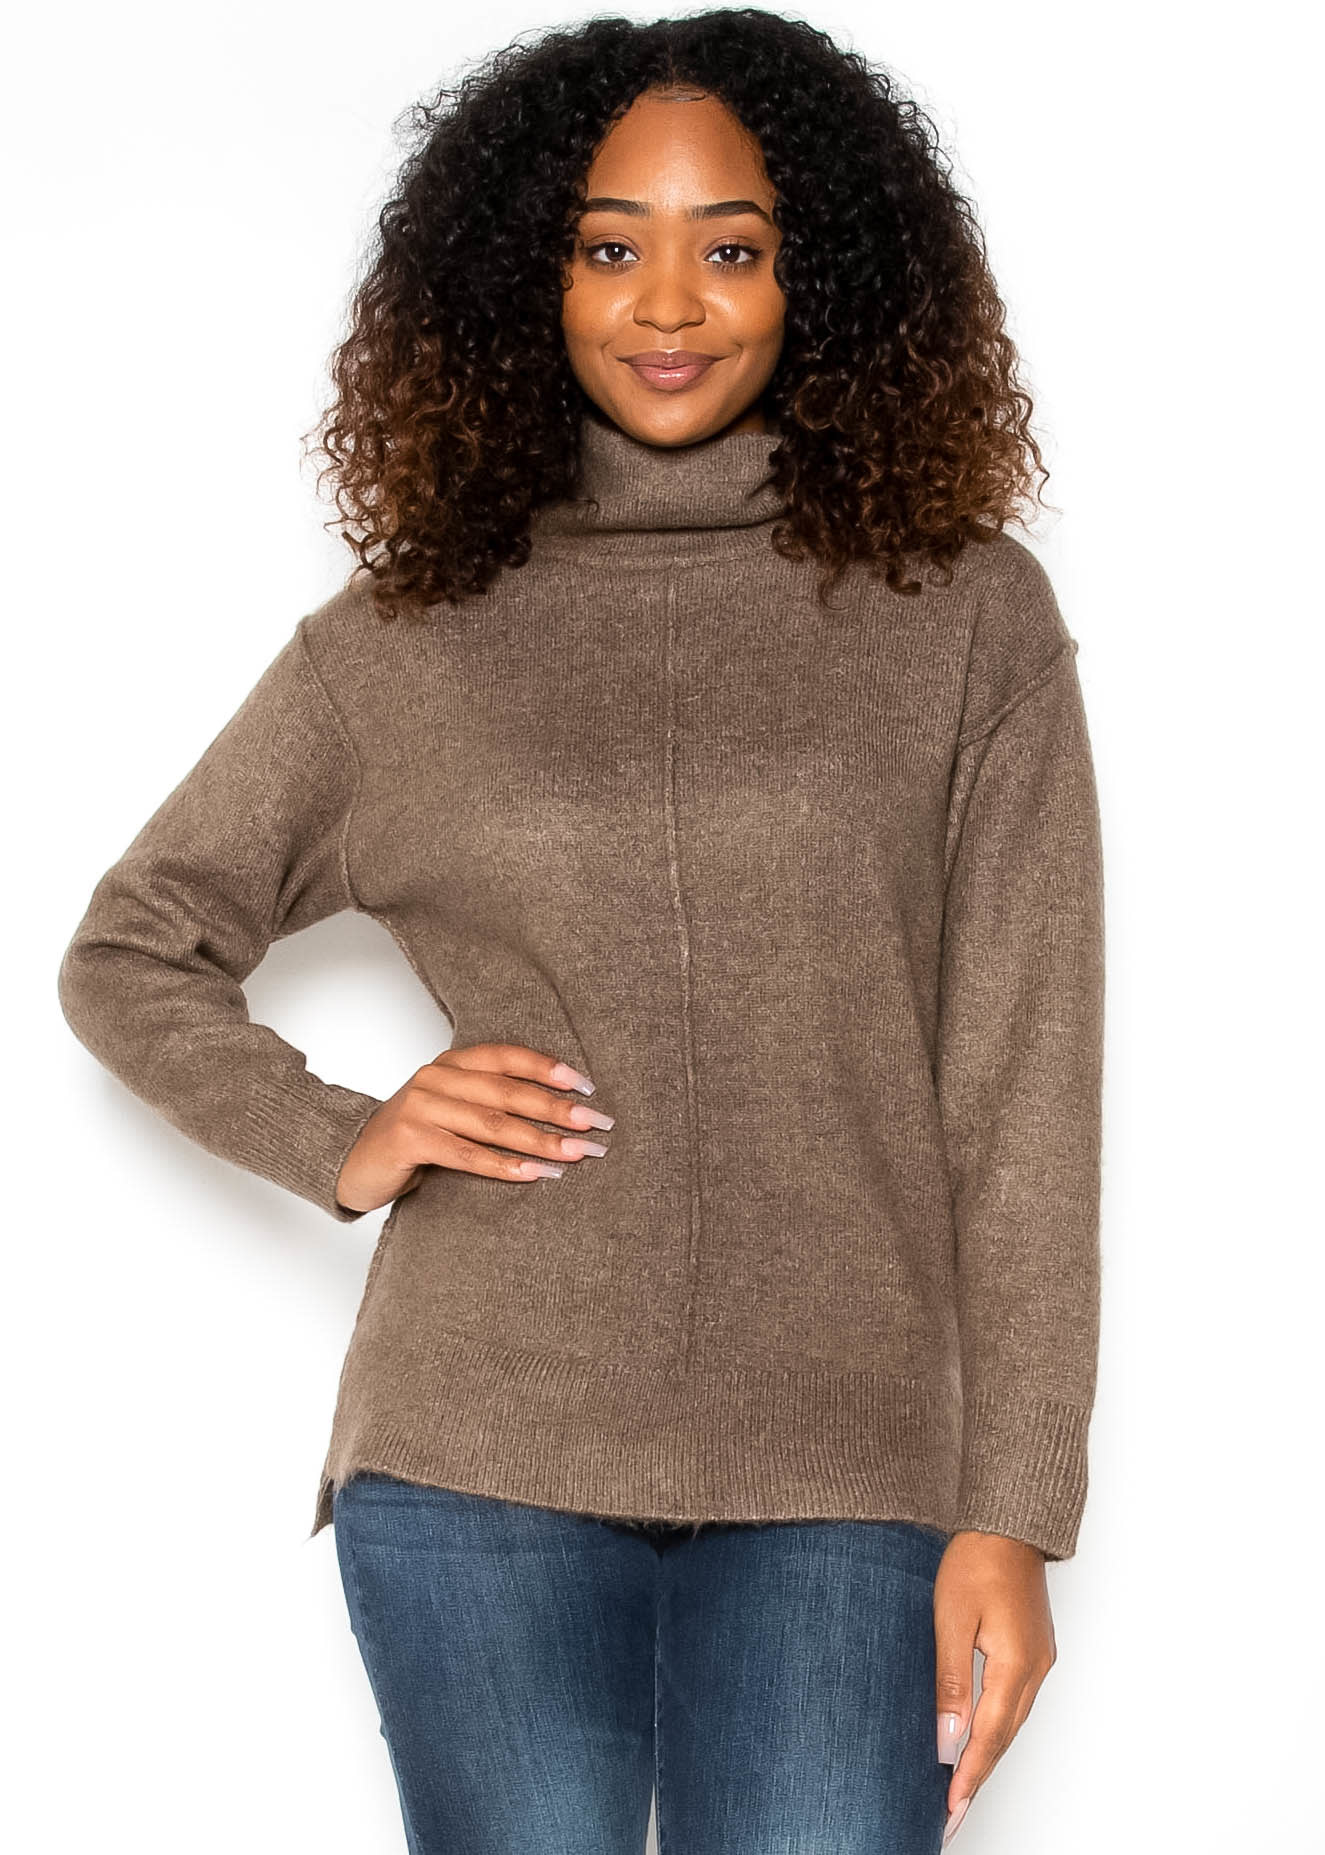 HOT CIDER MOCK NECK SWEATER